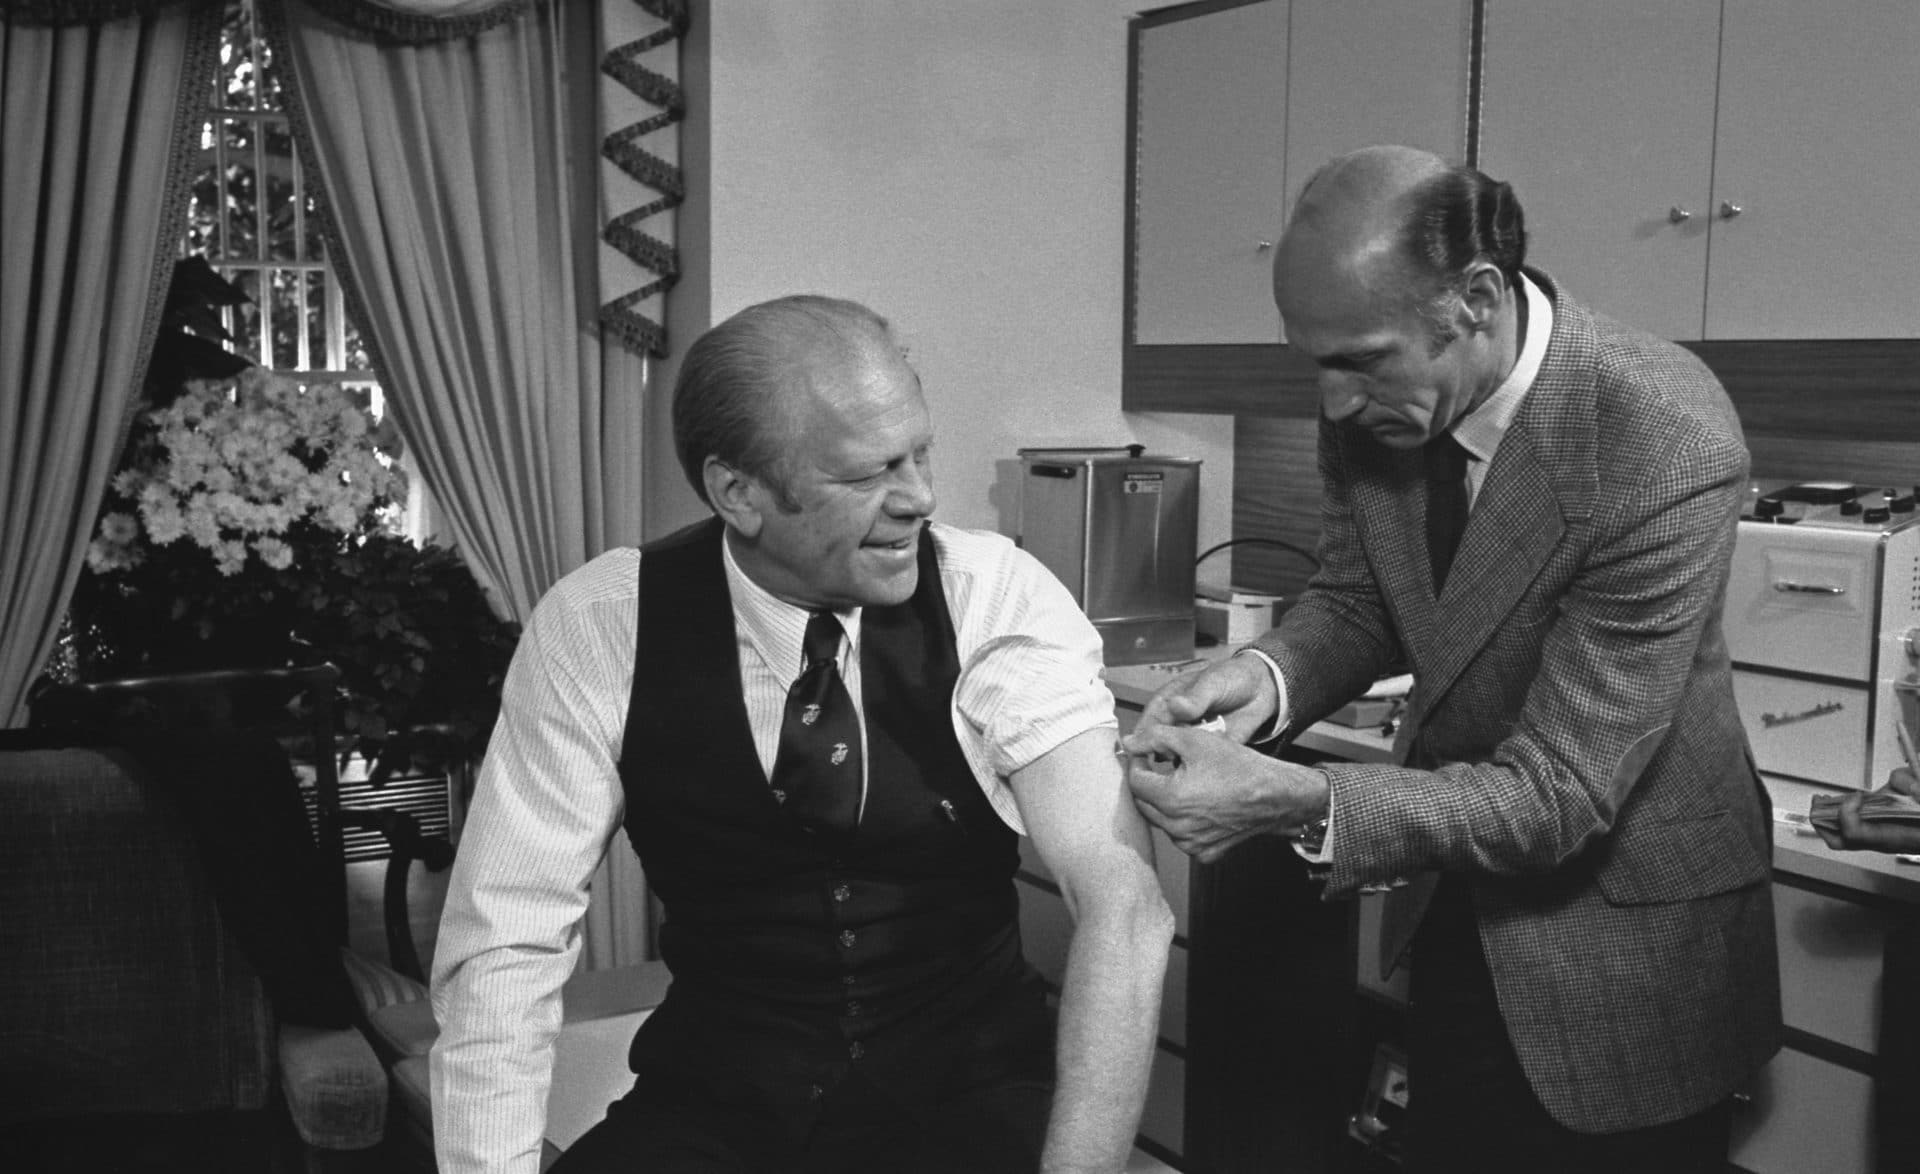 President Ford receives a swine flu inoculation from his White House physician, Dr. William Lukash, on October 14, 1976. (Gerald R. Ford Library)